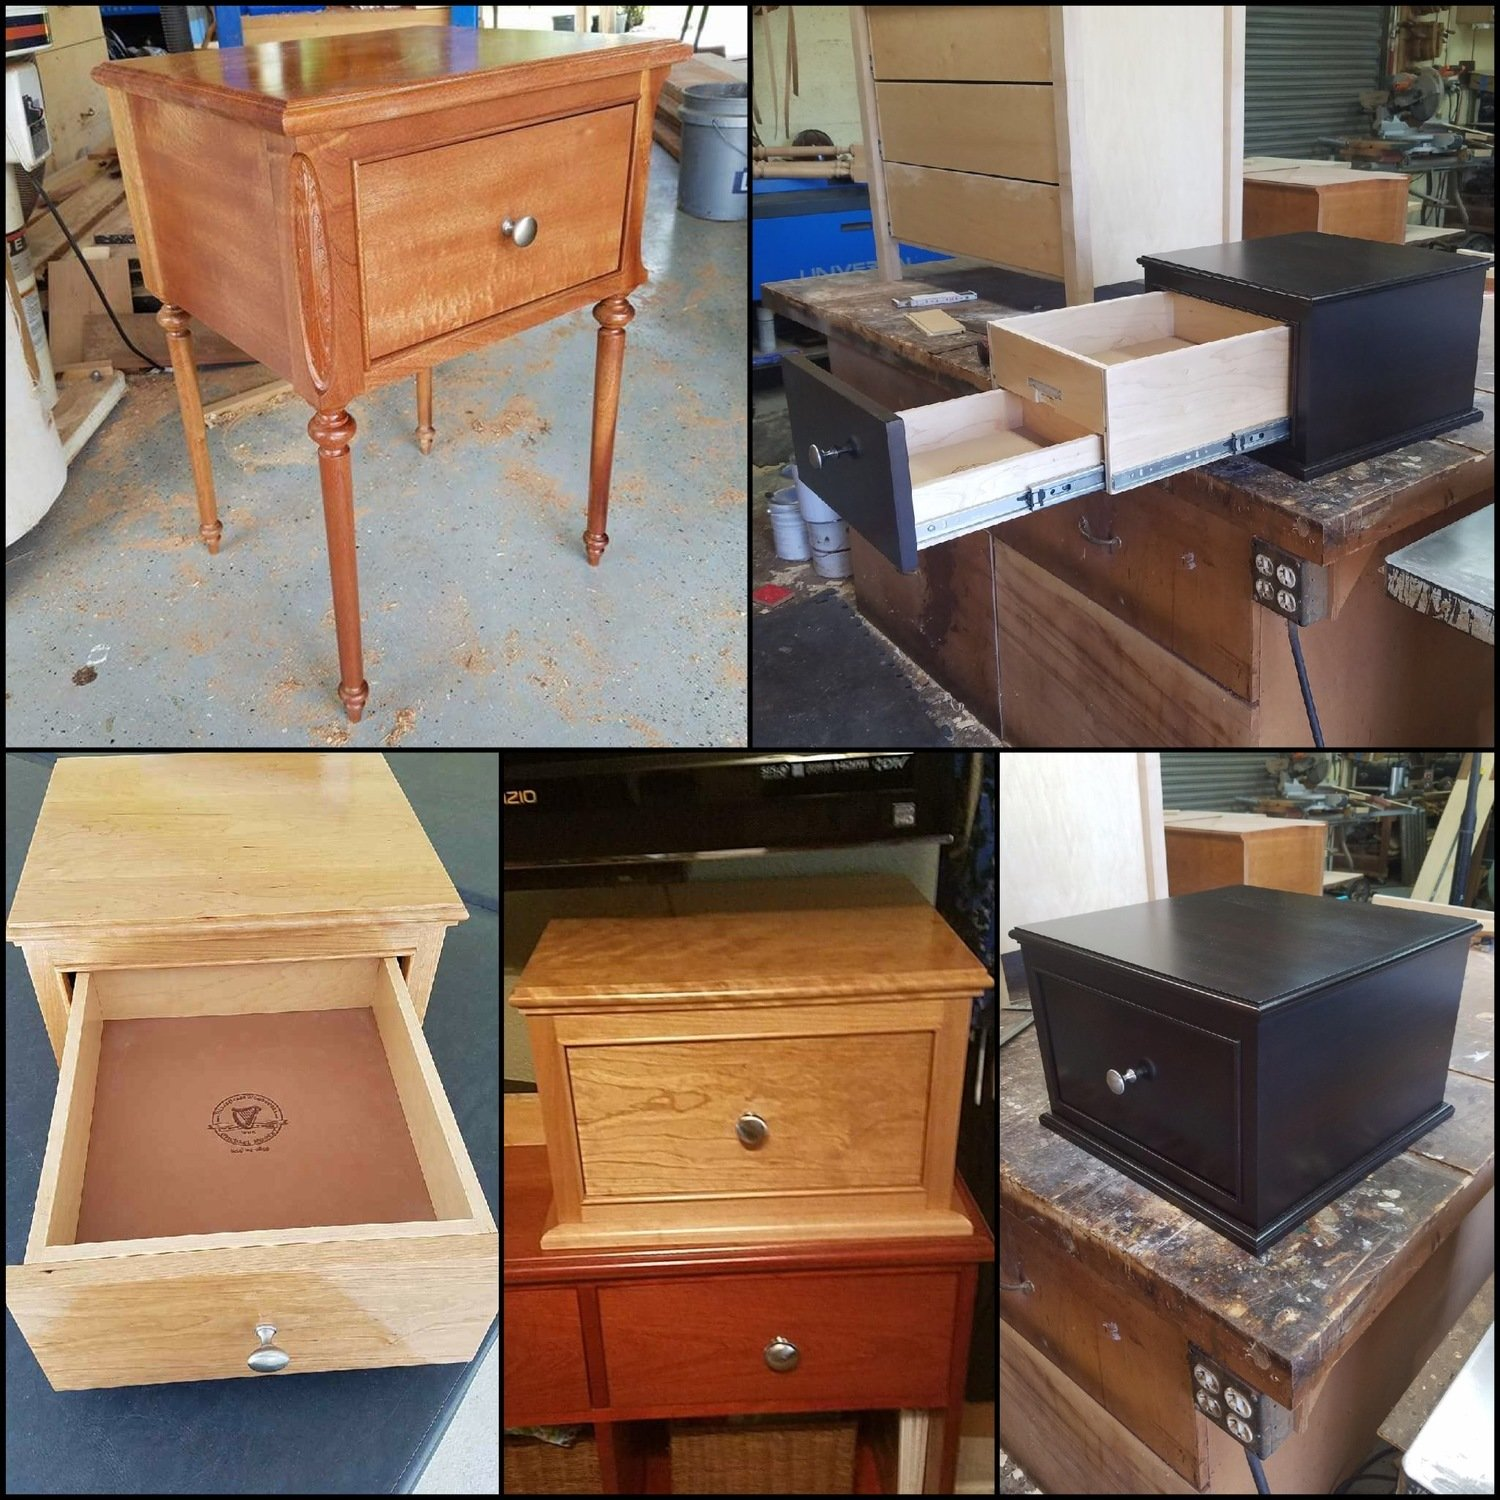 Secret Compartment Drawer With RFID Lock System